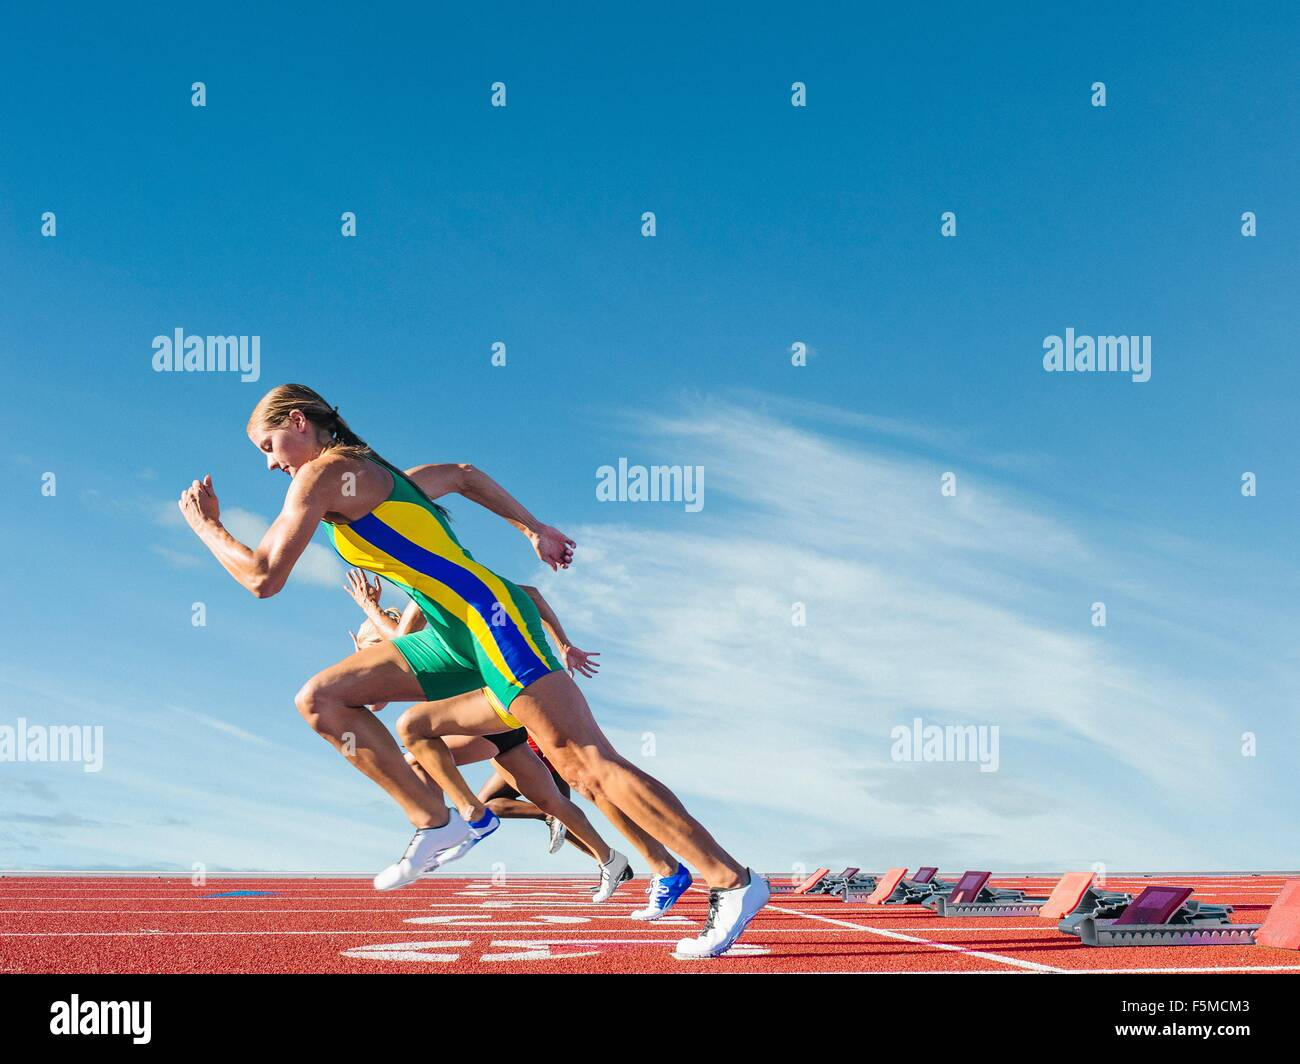 Three female athletes on athletics track, racing - Stock Image